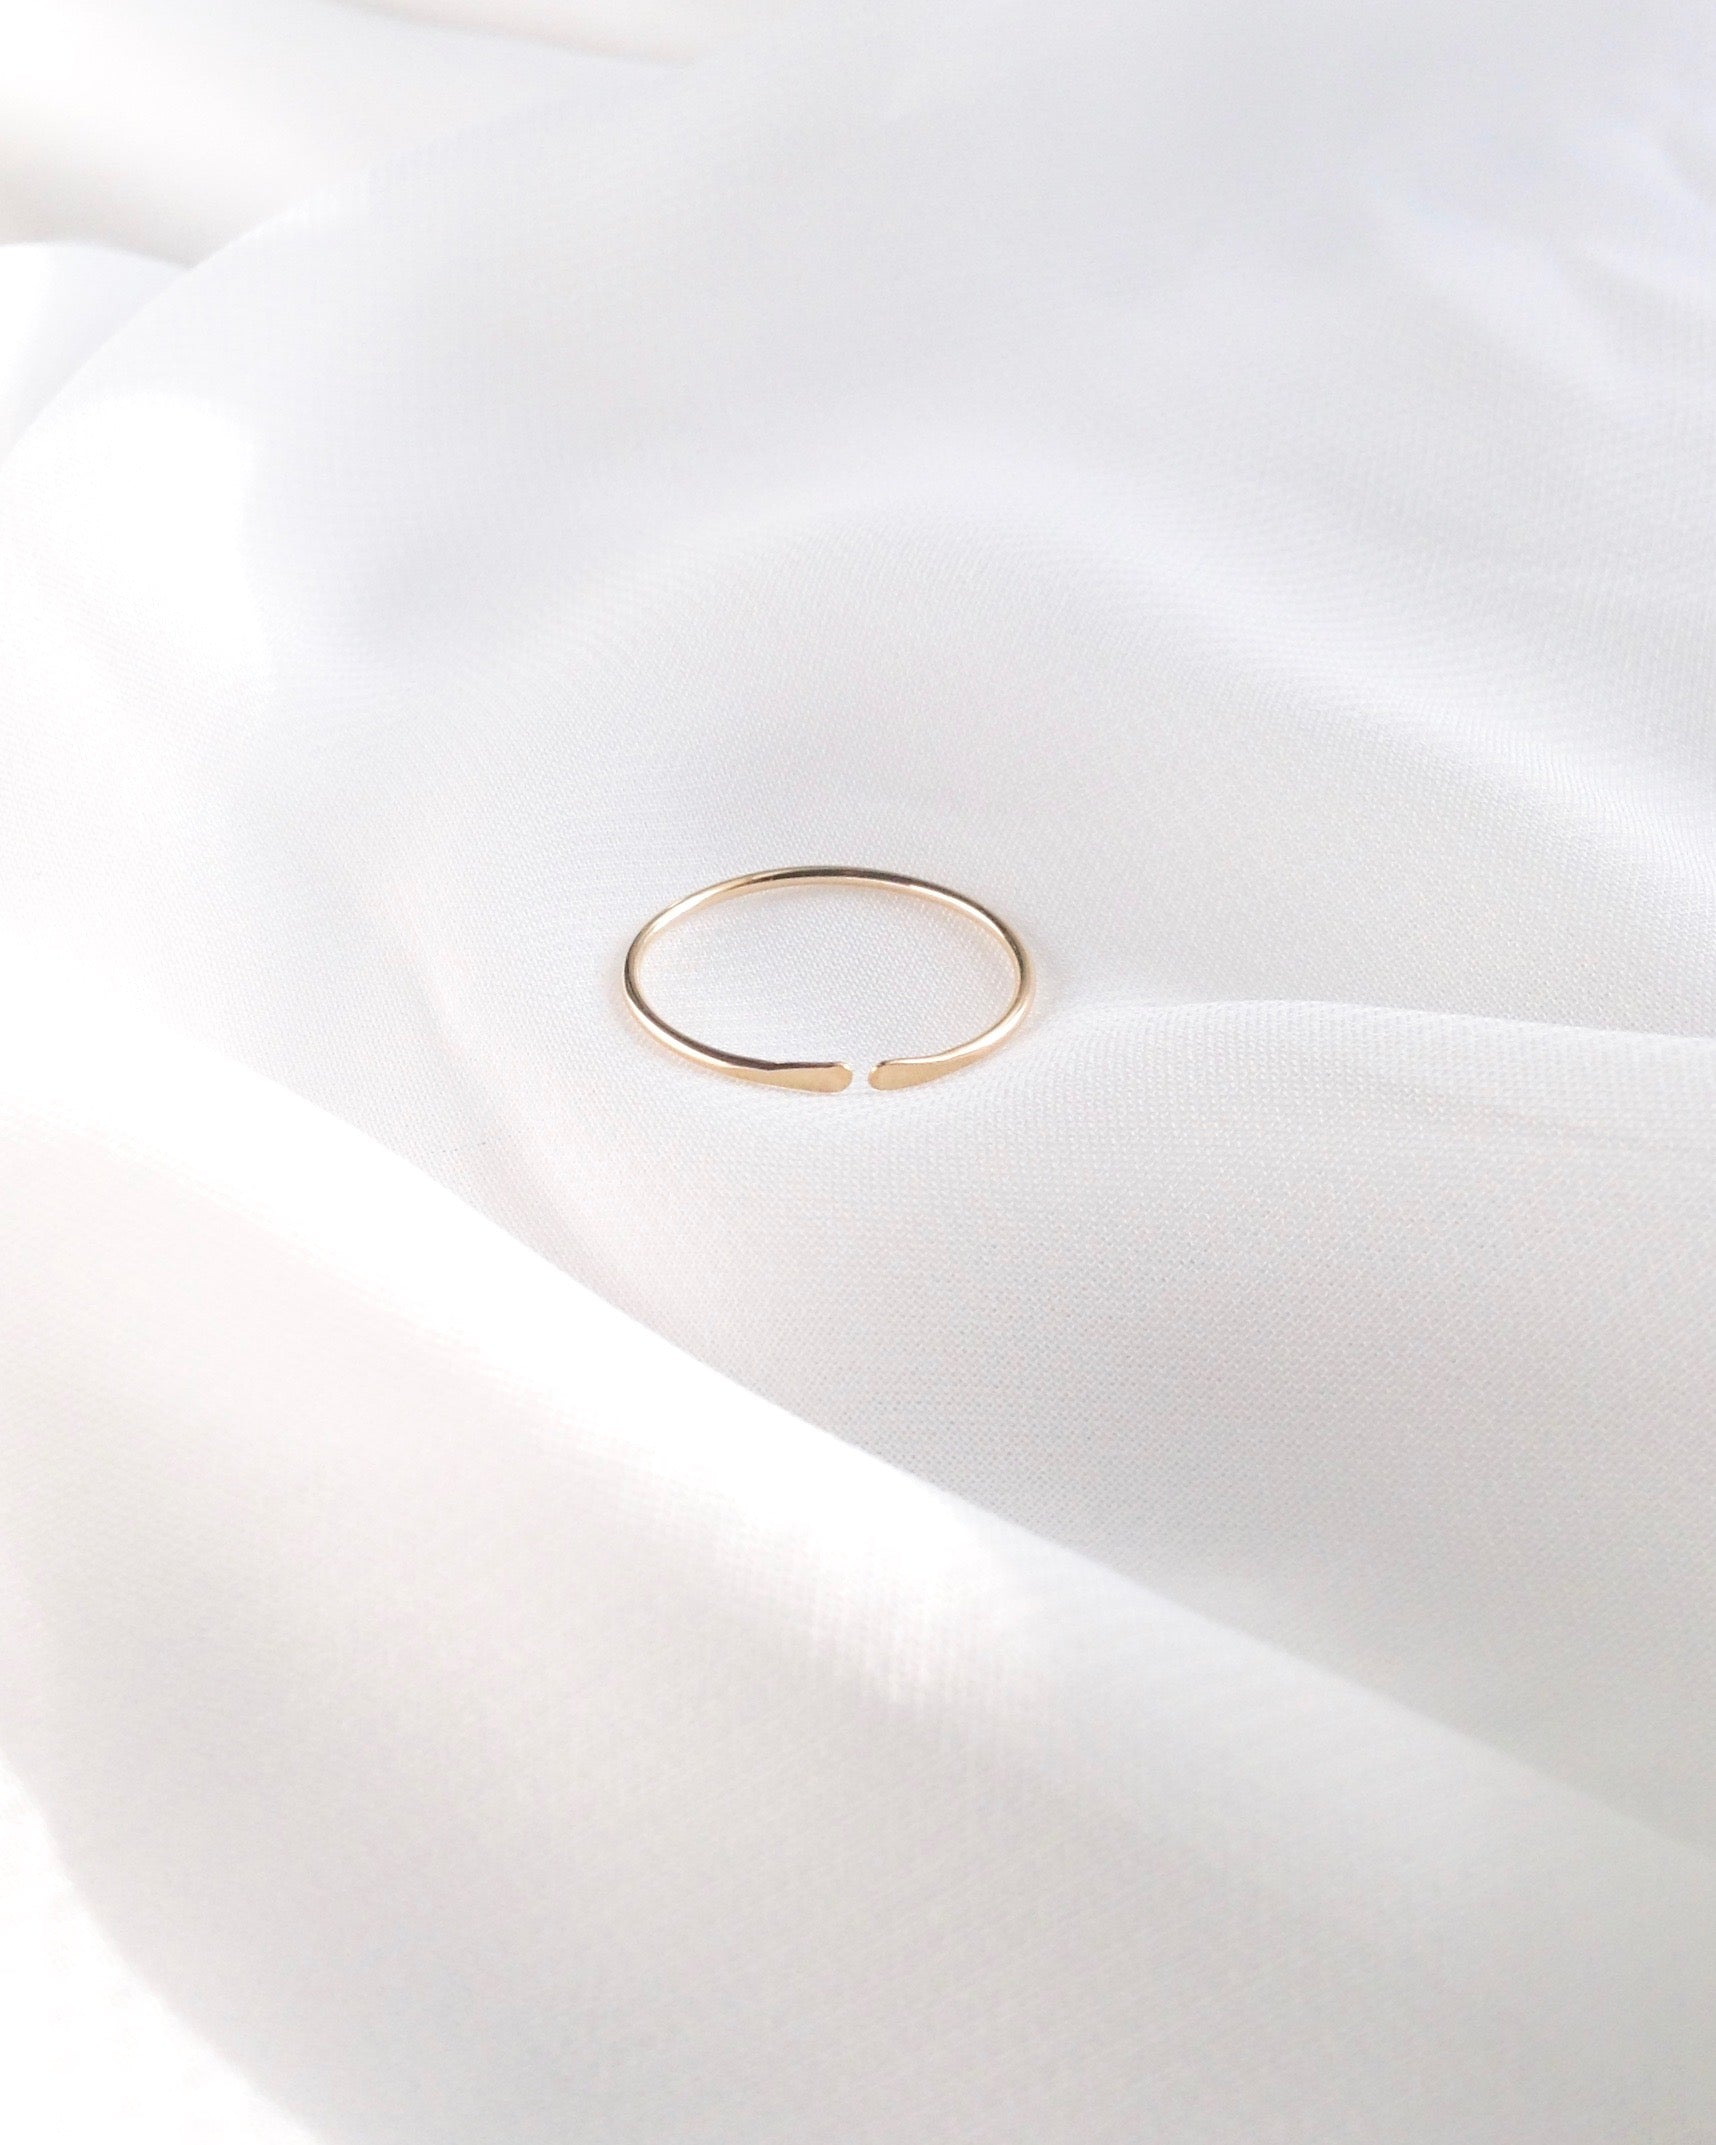 Thin Open Cuff Ring | Delicate Stacking Ring | IB Jewelry